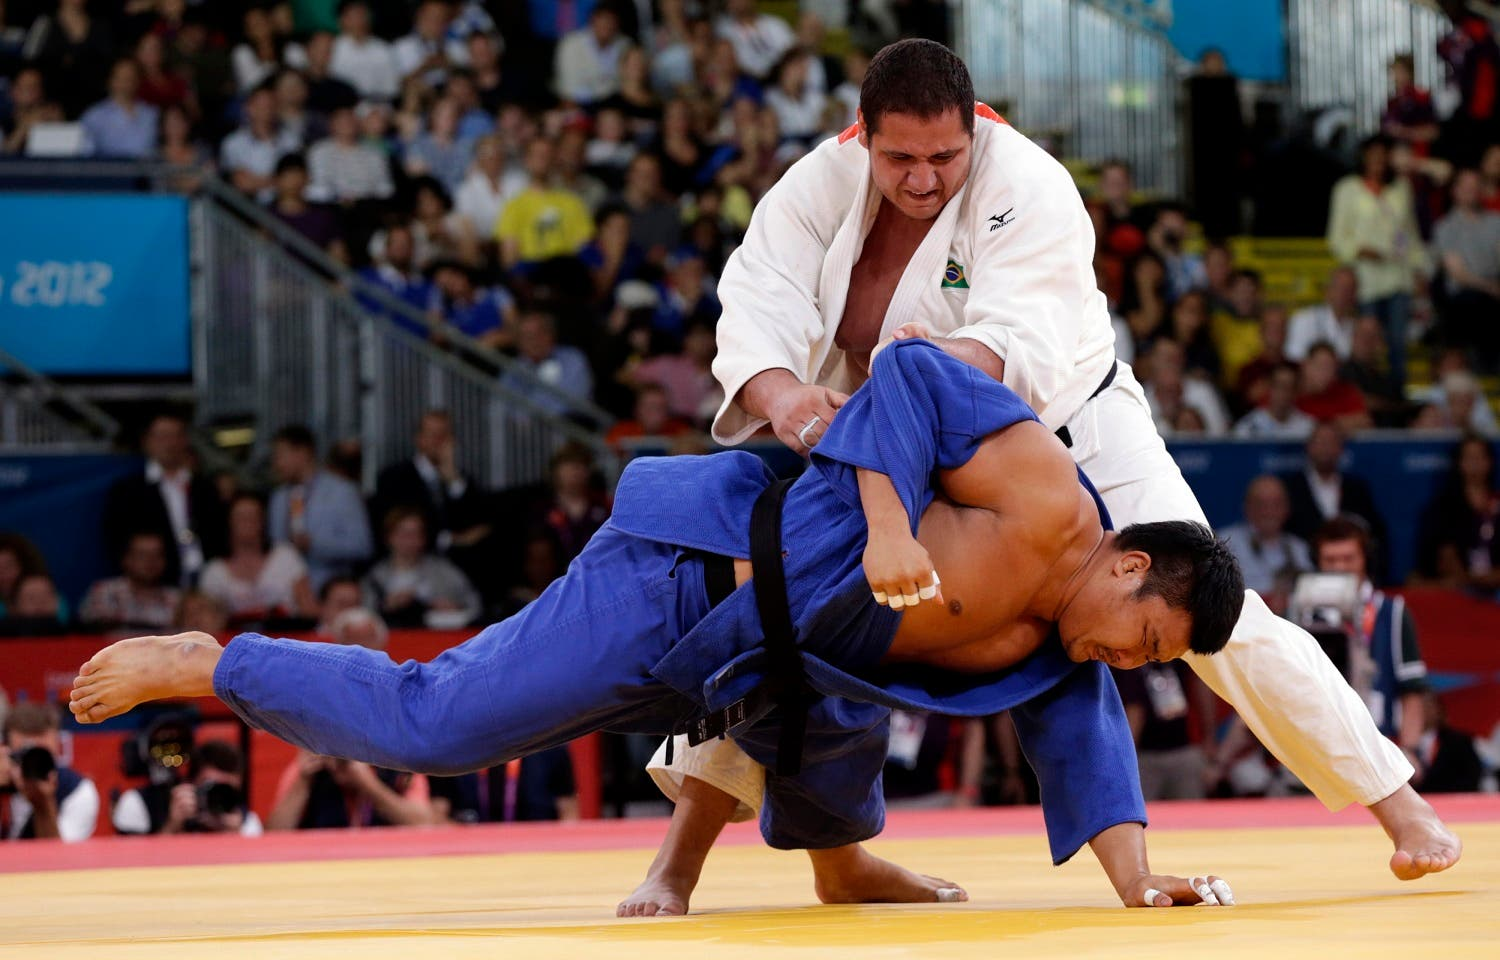 Brazil's Rafael Silva (white) fights with South Korea's Kim Sung-min during their men's +100kg bronze medal judo match at the London 2012 Olympic Games August 3, 2012. REUTERS